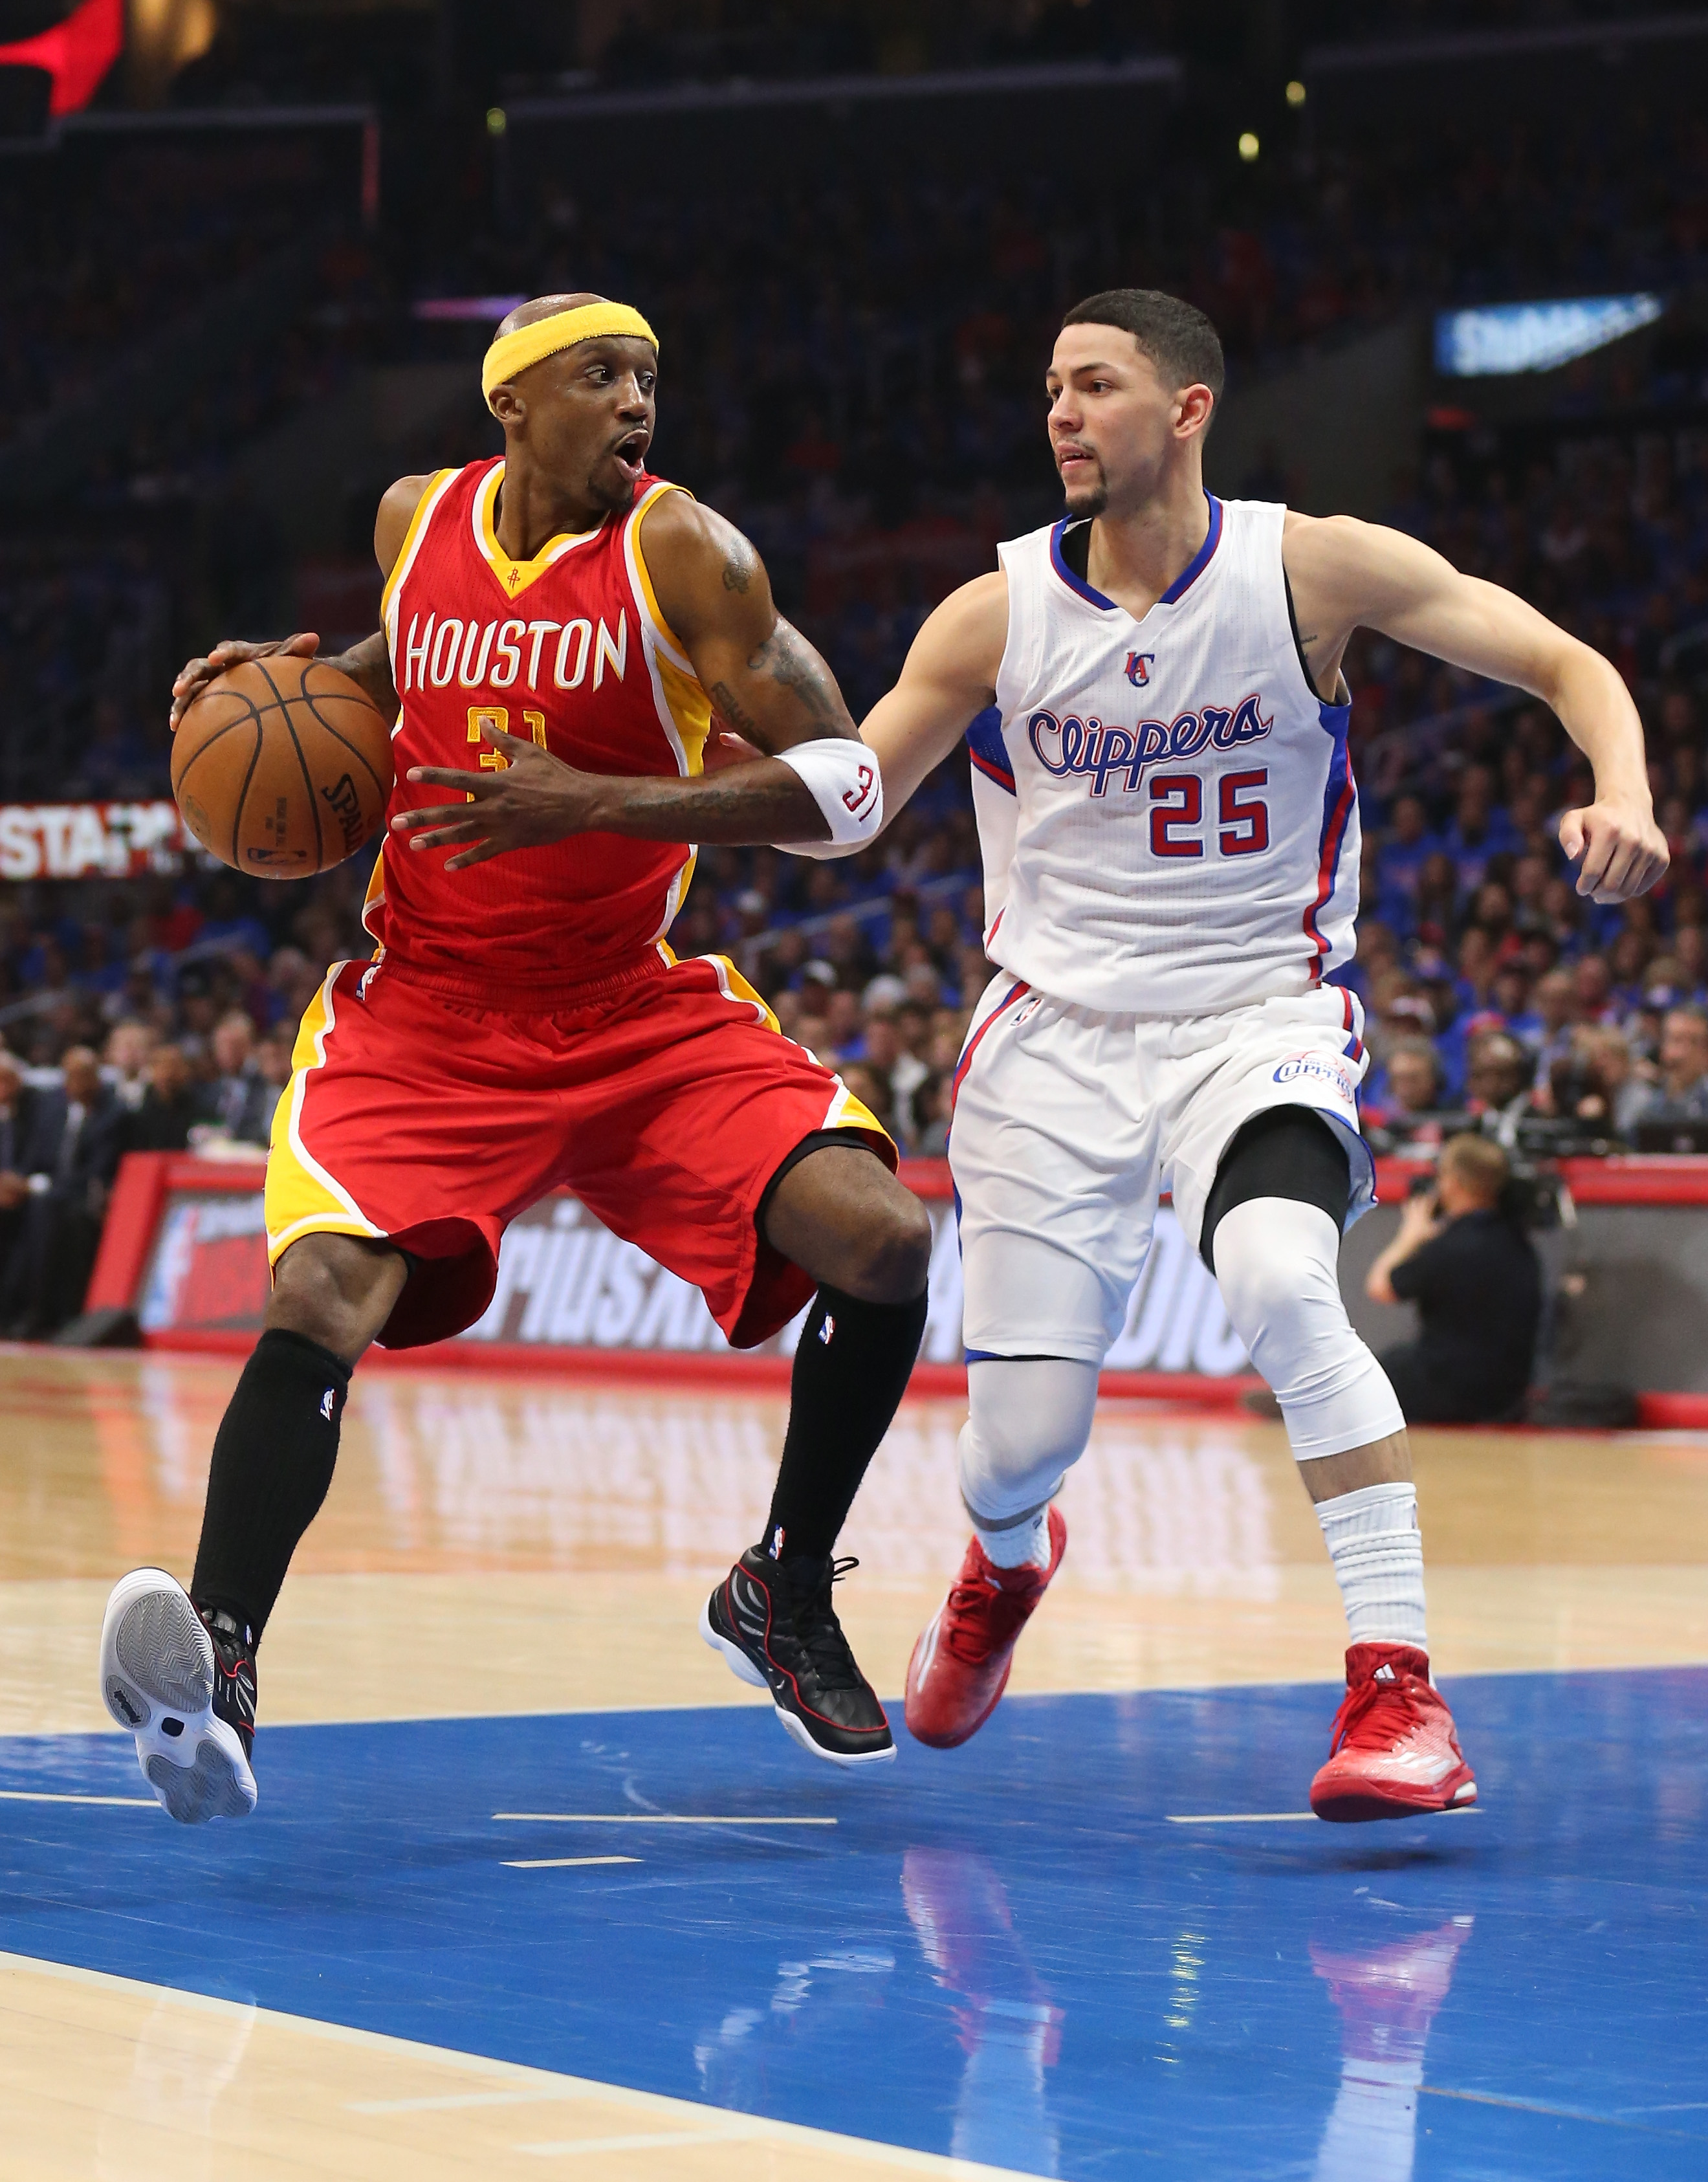 Rockets vs. Clippers 2015 results: 3 things we learned in Clips' dominating win